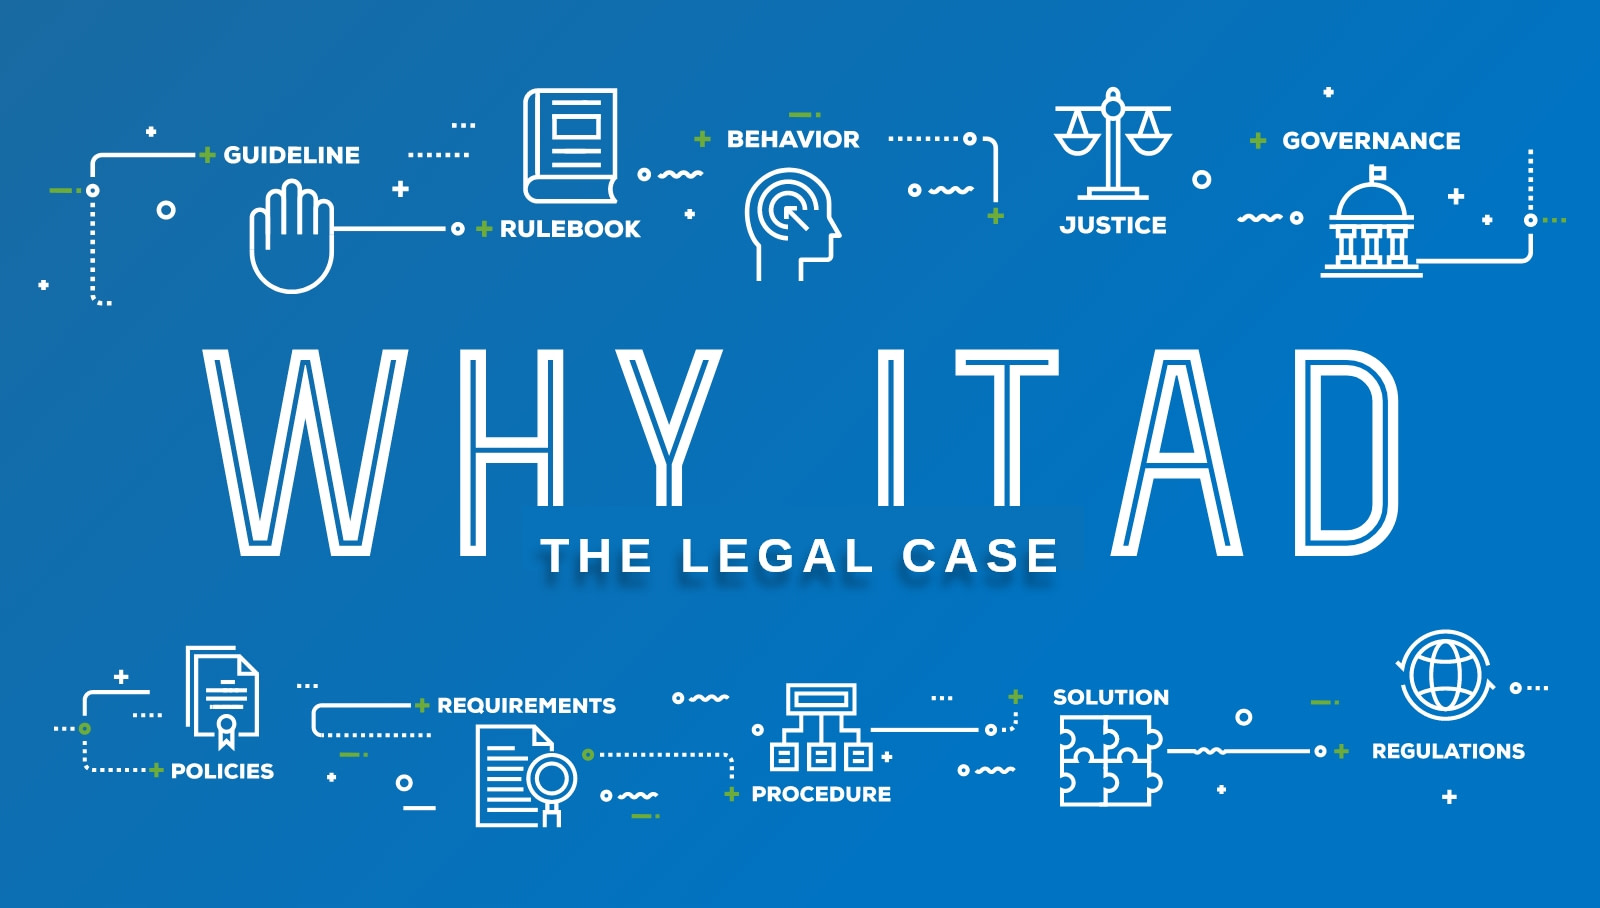 Why ITAD. The legal case